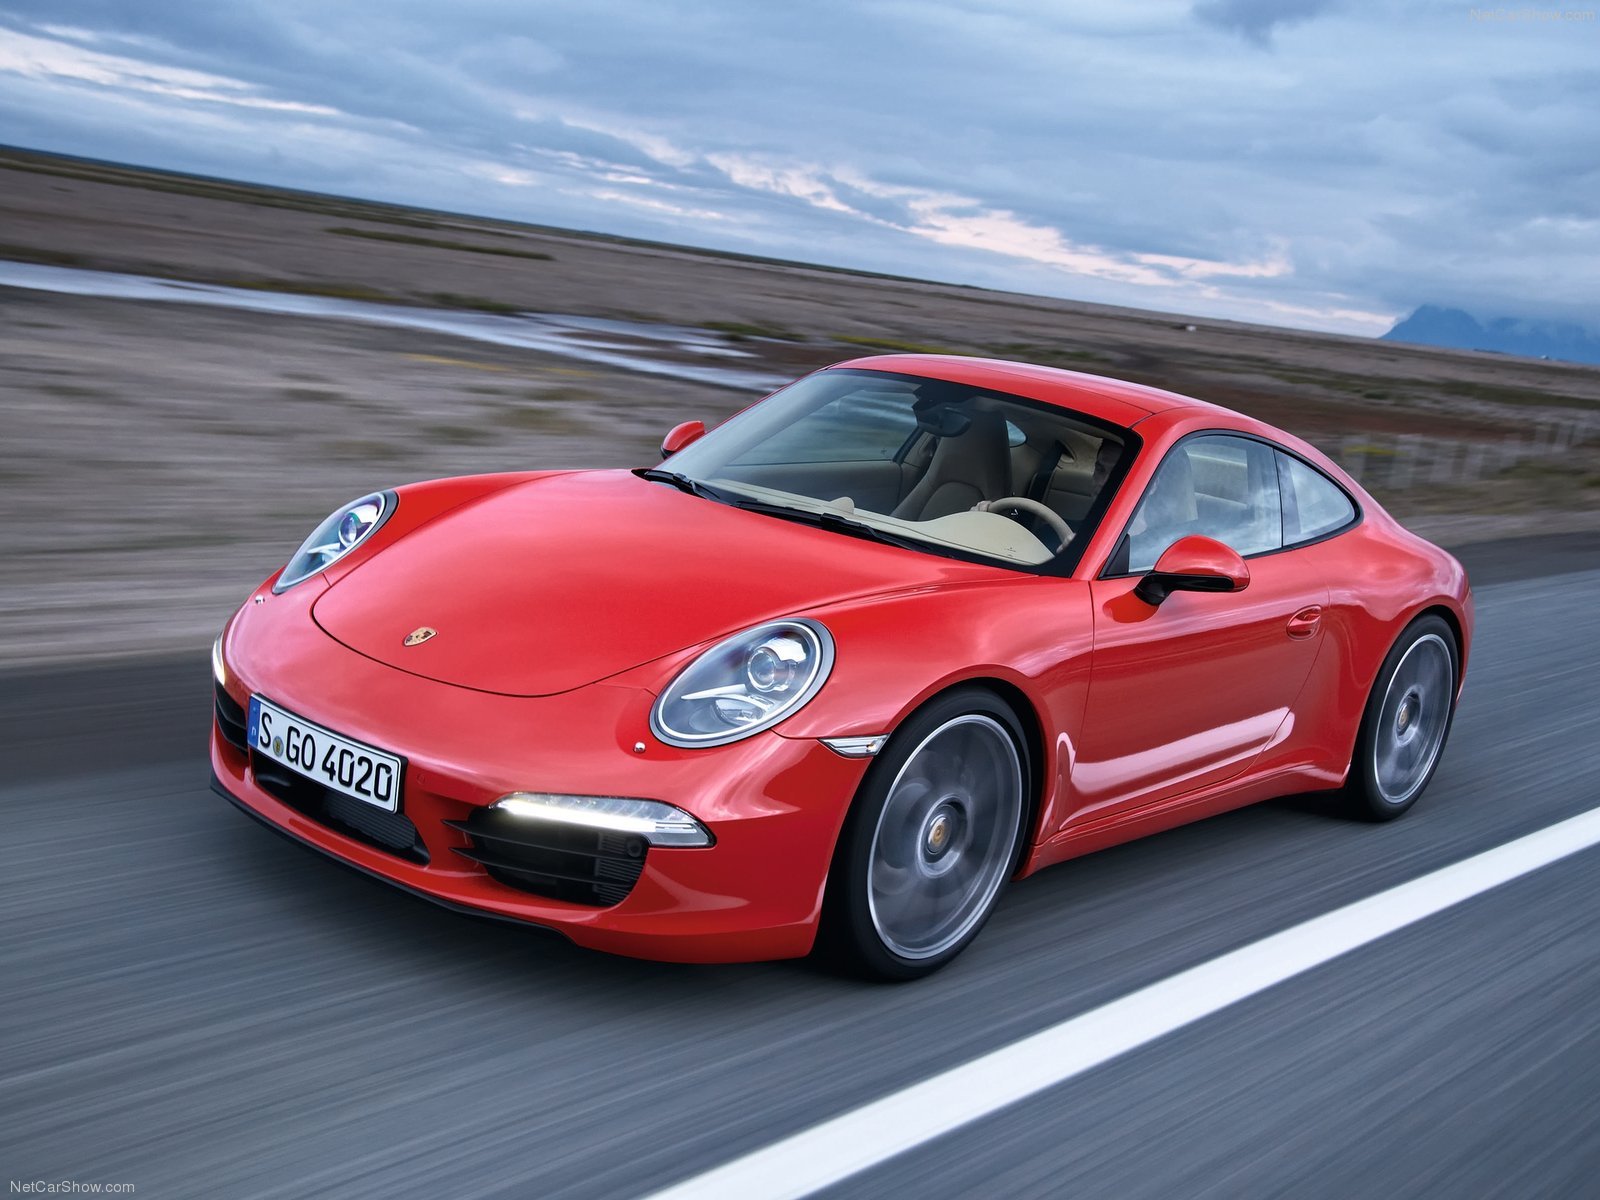 Porsche-911_Carrera_2013_1600x1200_wallpaper_01